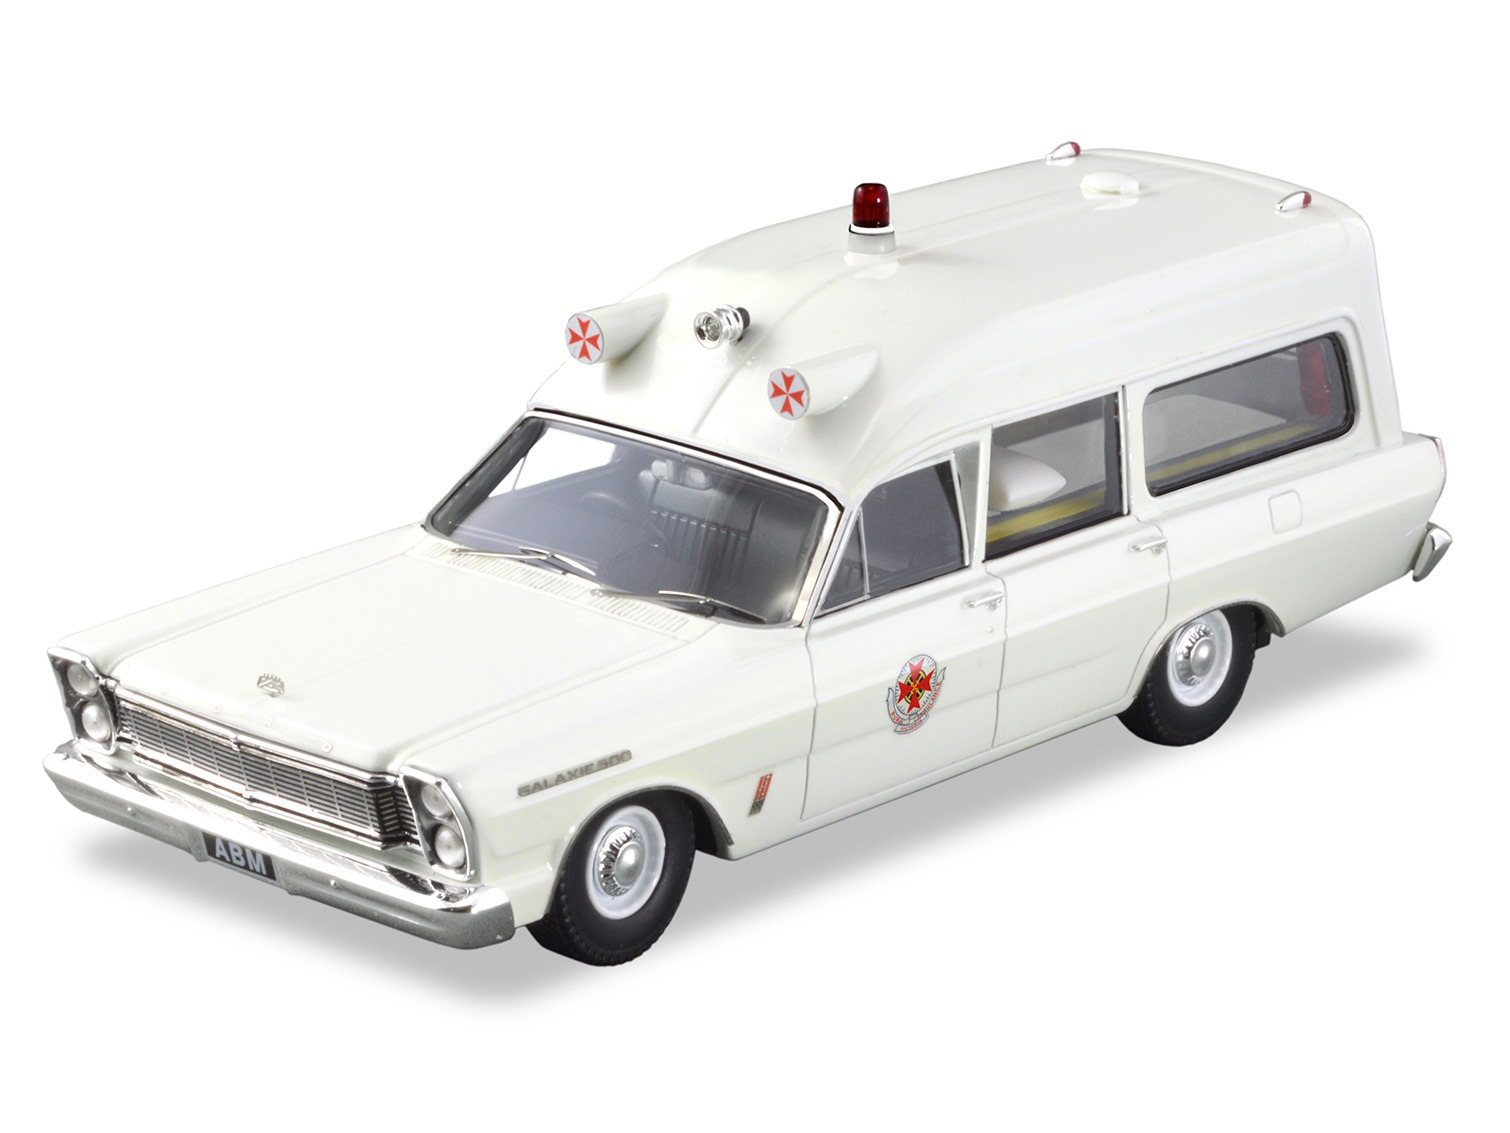 1965 Ford Galaxie 500 Ambulance – White